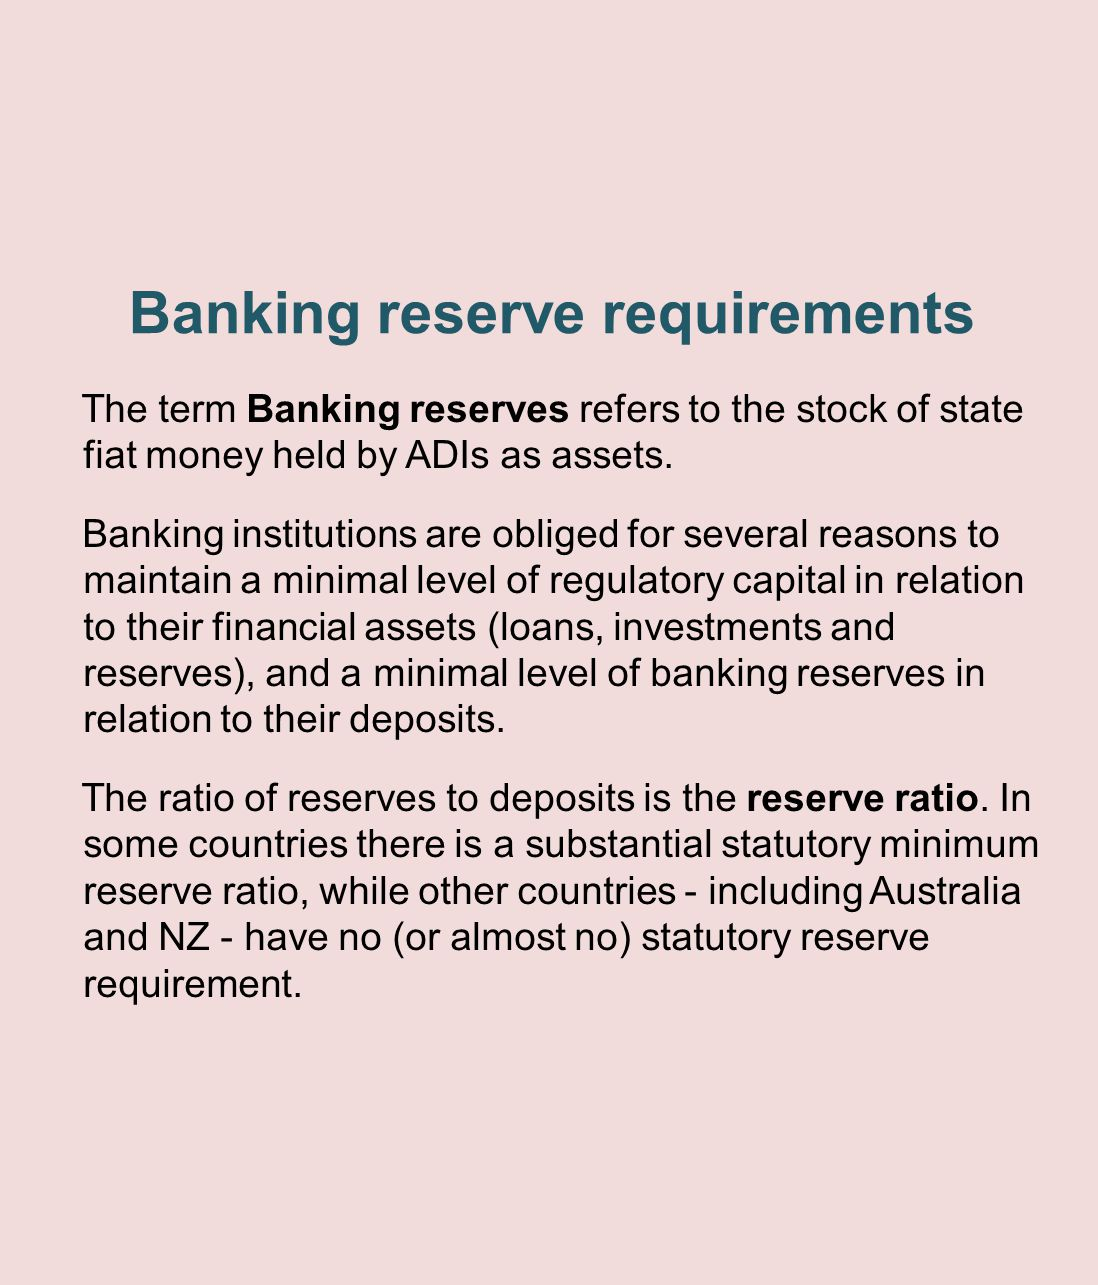 Banking reserve requirements The term Banking reserves refers to the stock of state fiat money held by ADIs as assets.